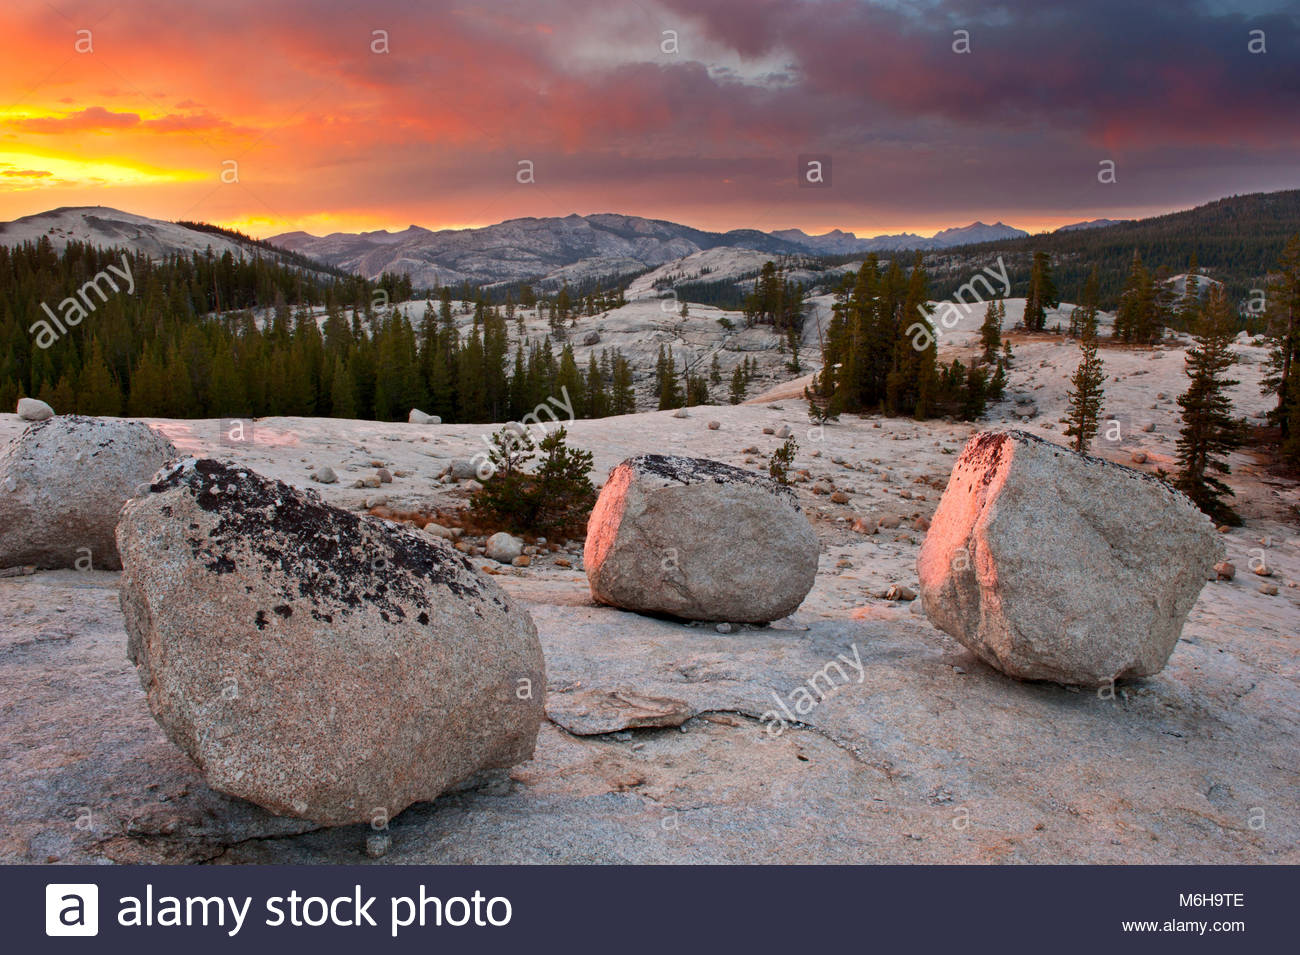 Boulders at Sunset near Tuolumne Meadows, Yosemite National Park, California - Stock Image